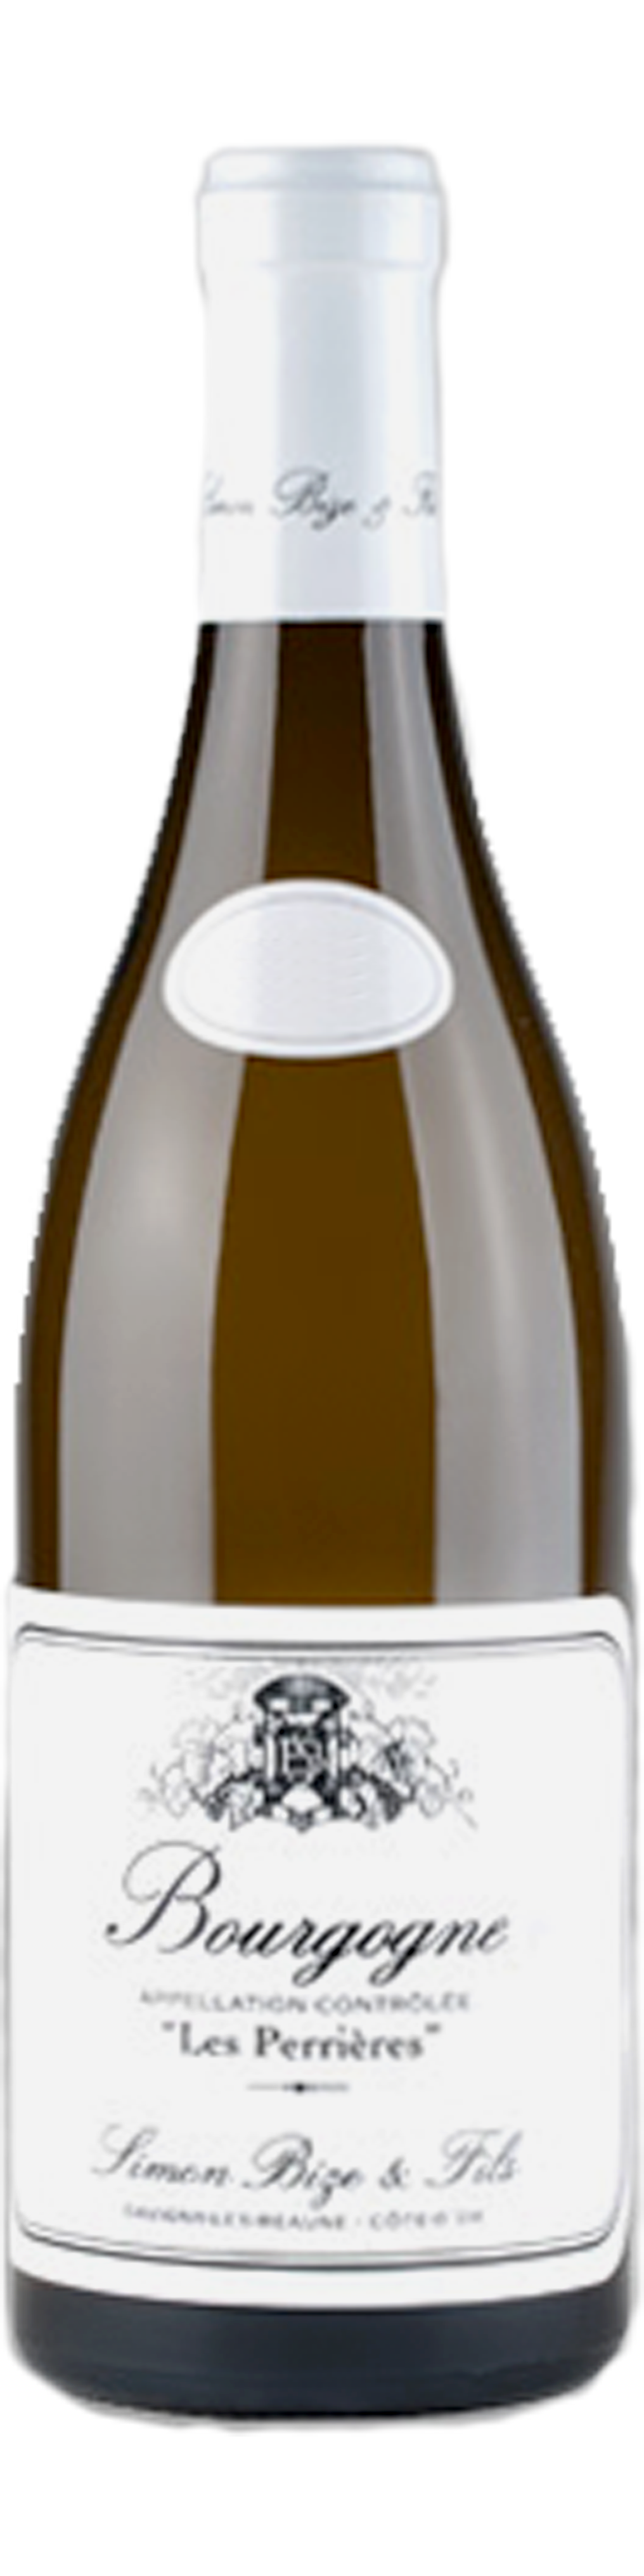 Image of product Bourgogne Blanc Les Perrières